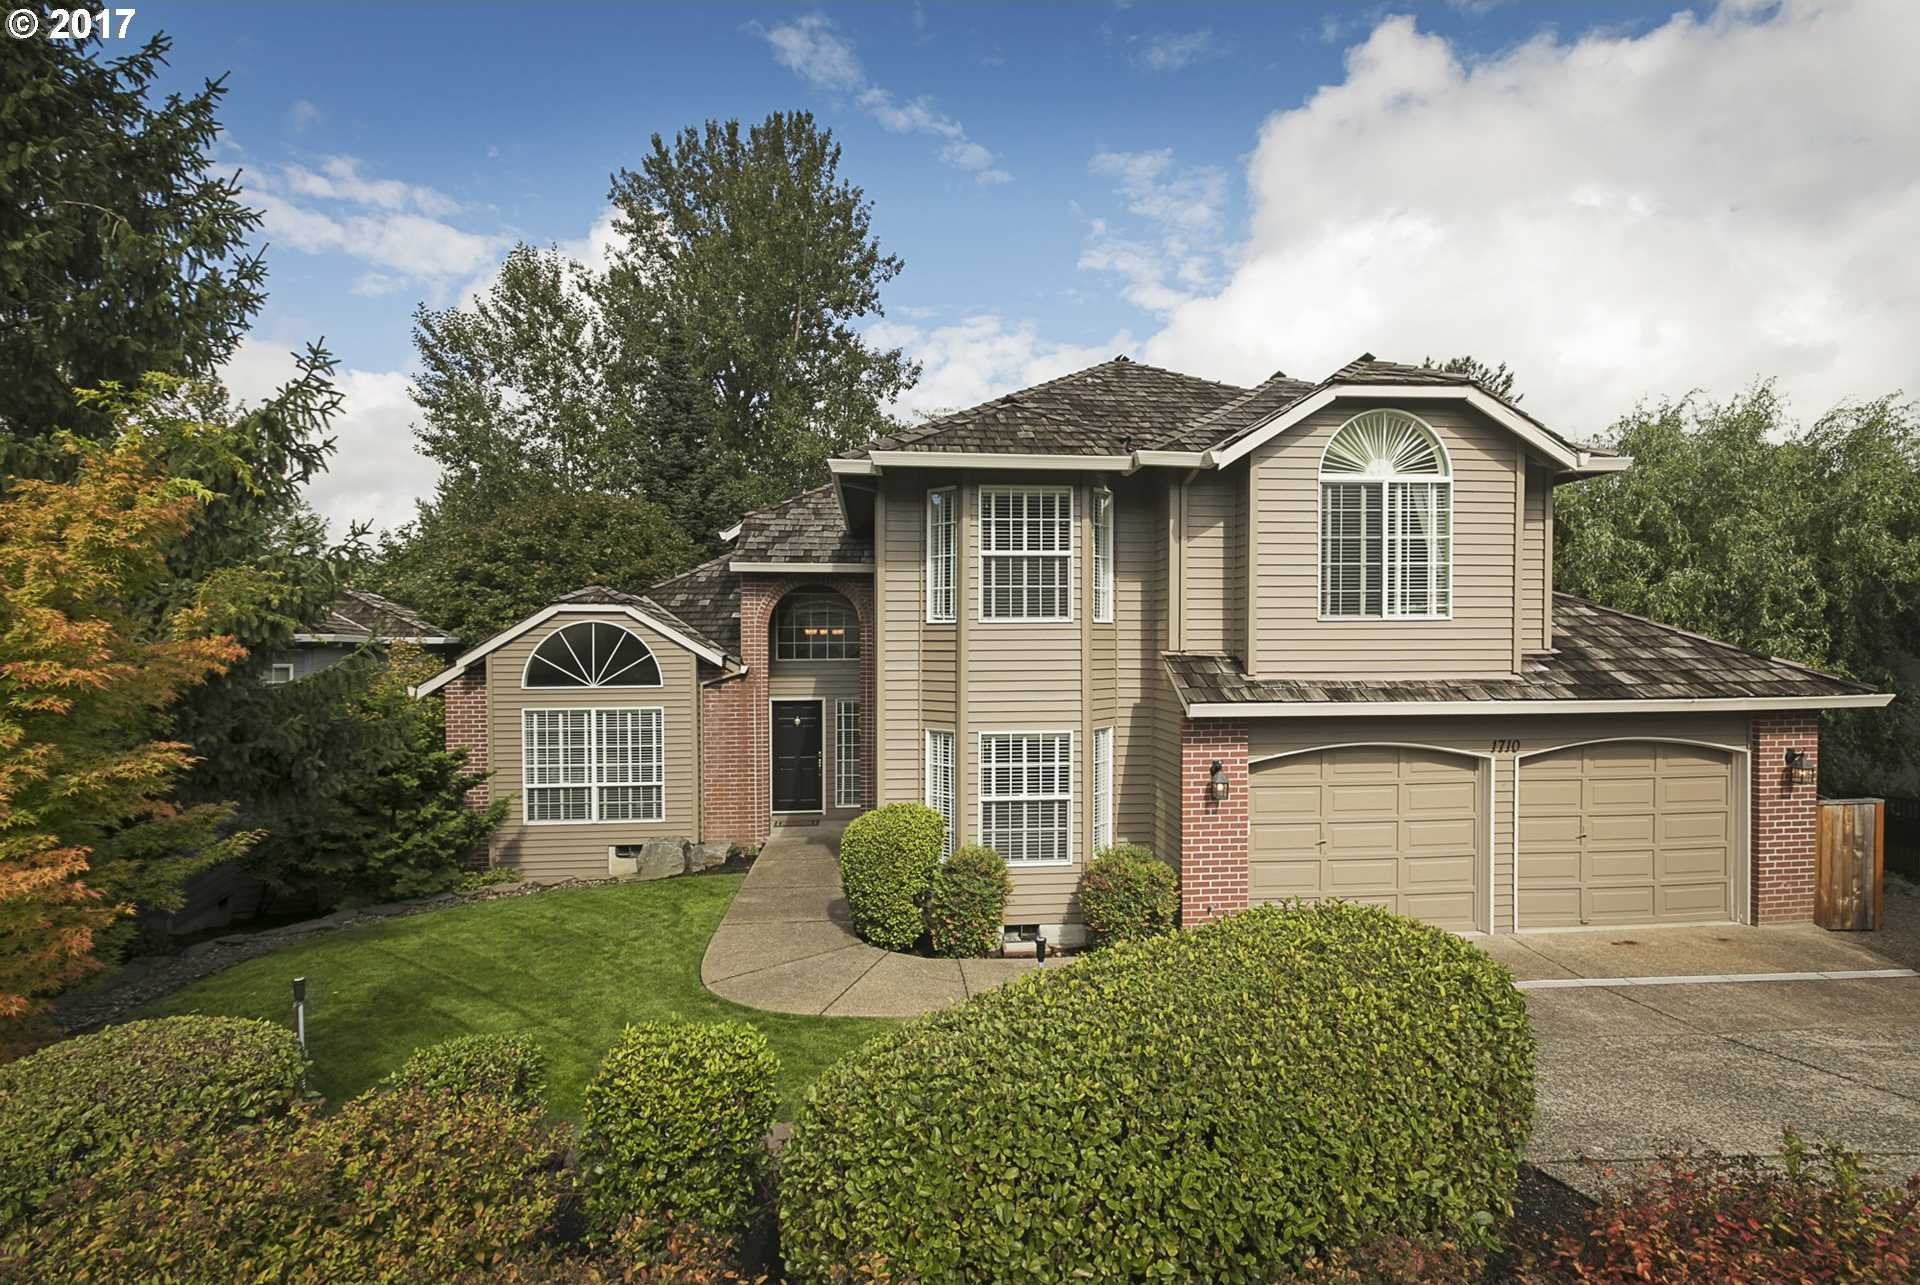 $650,000 - 4Br/3Ba -  for Sale in Forest Heights, Portland